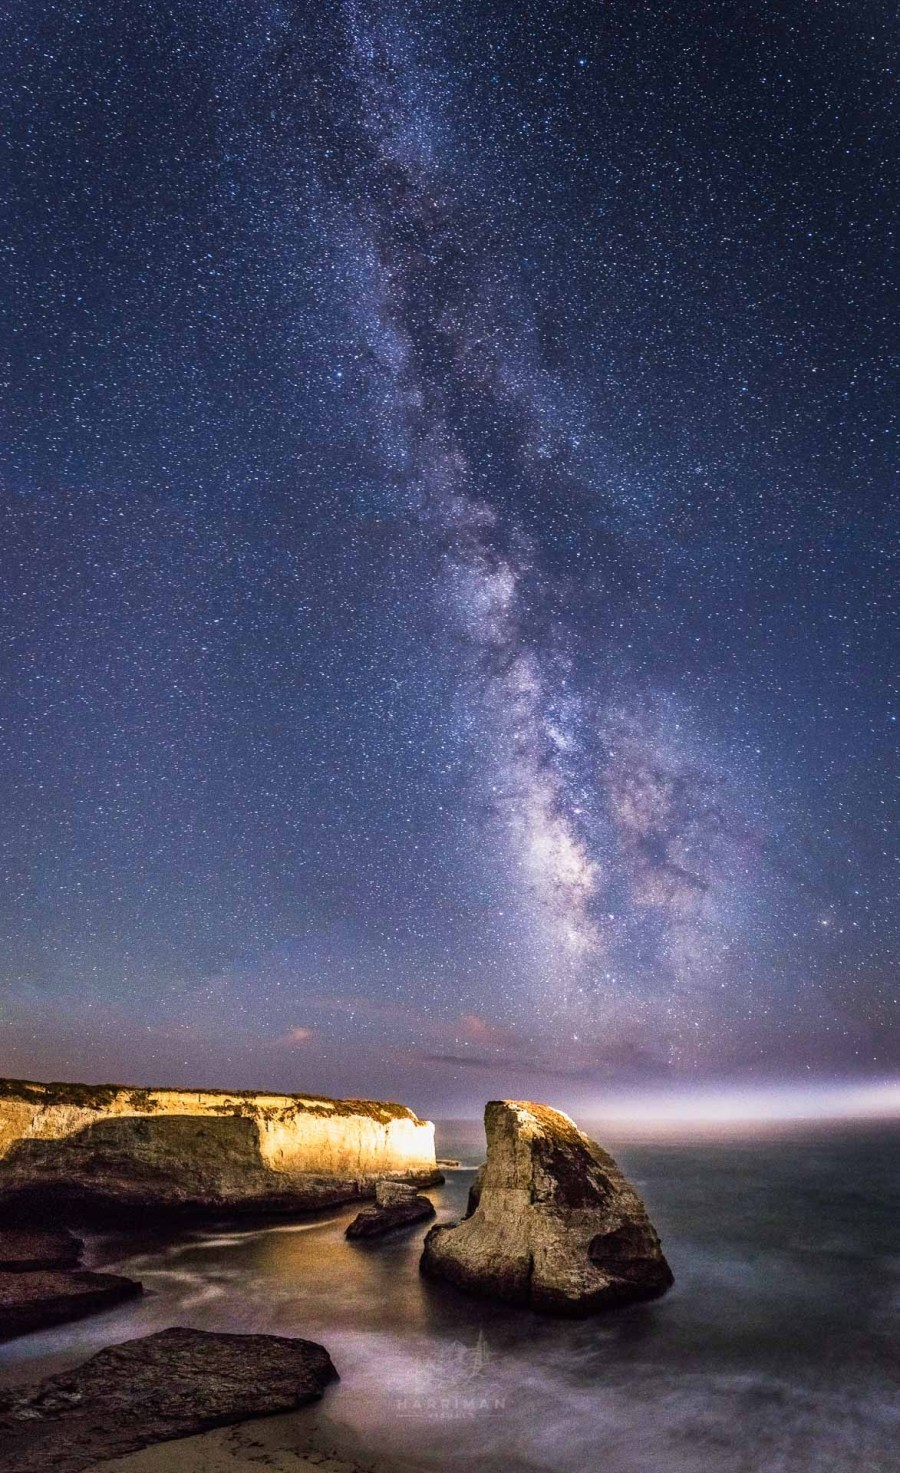 Shark Fin Cove Milky Way